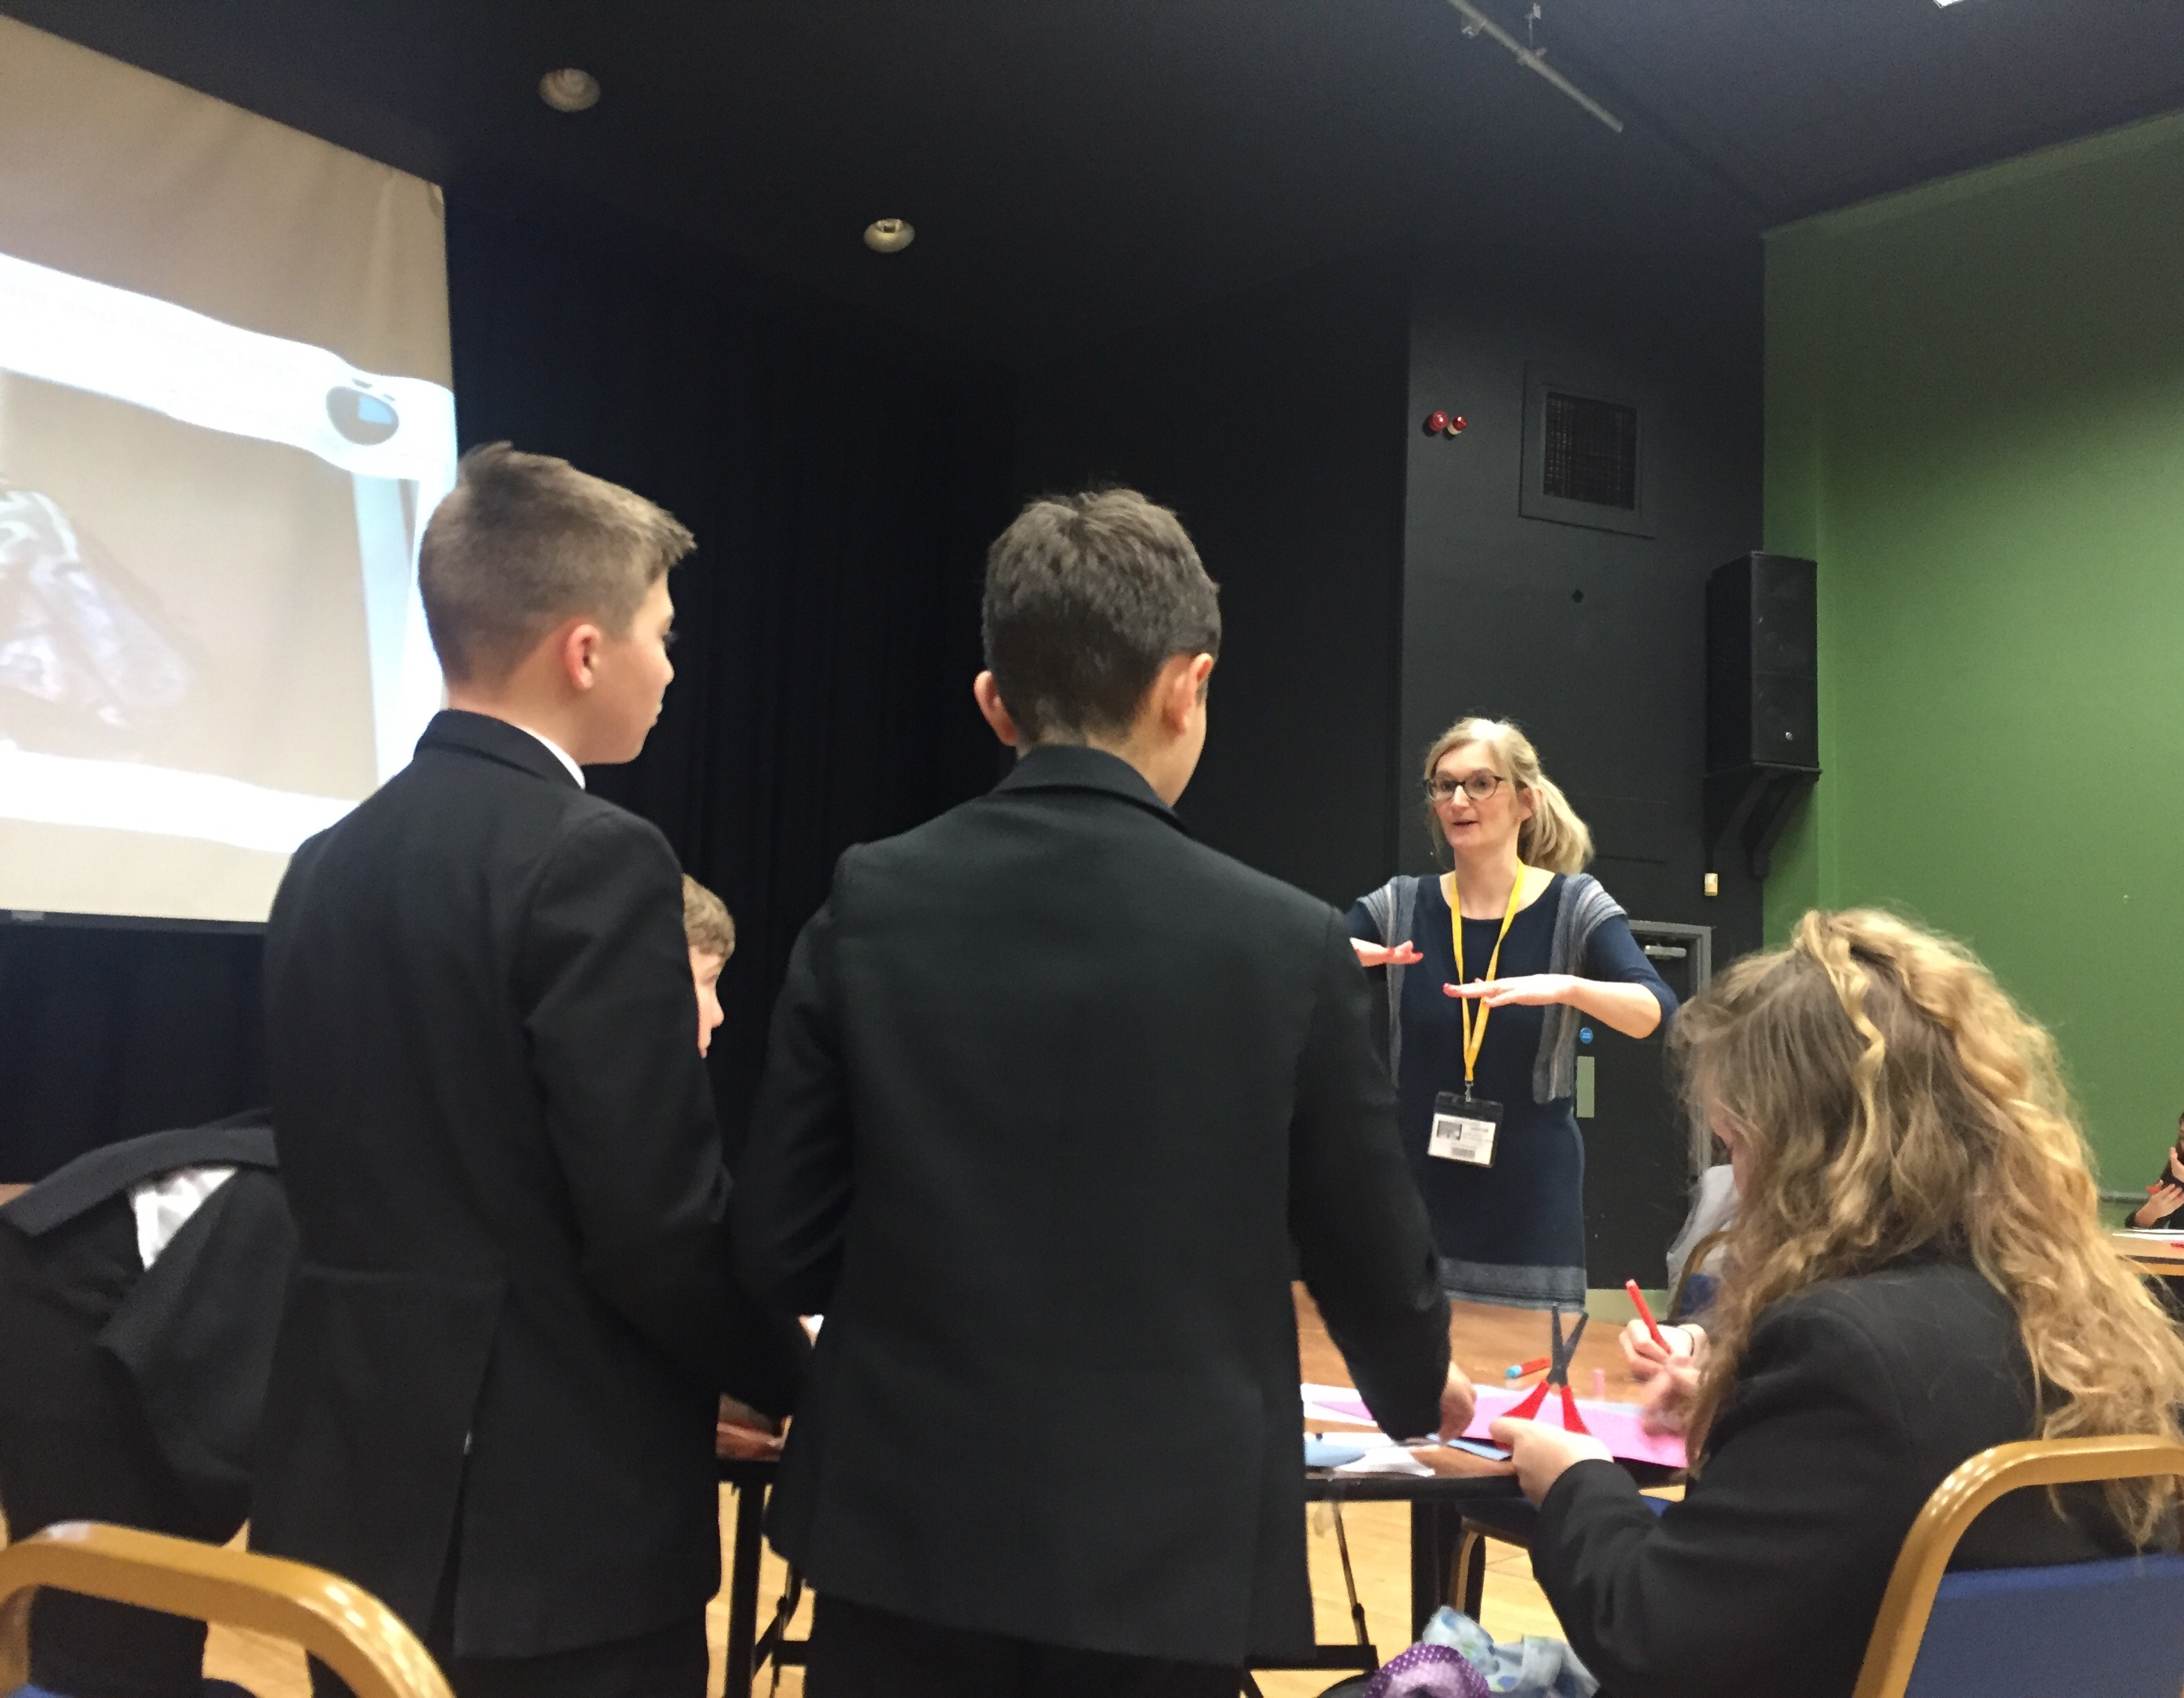 Presenting skills in action at Grimsby Institute at the Humberston students explain how they sometimes have to think outside the box to problem solve on the spot.